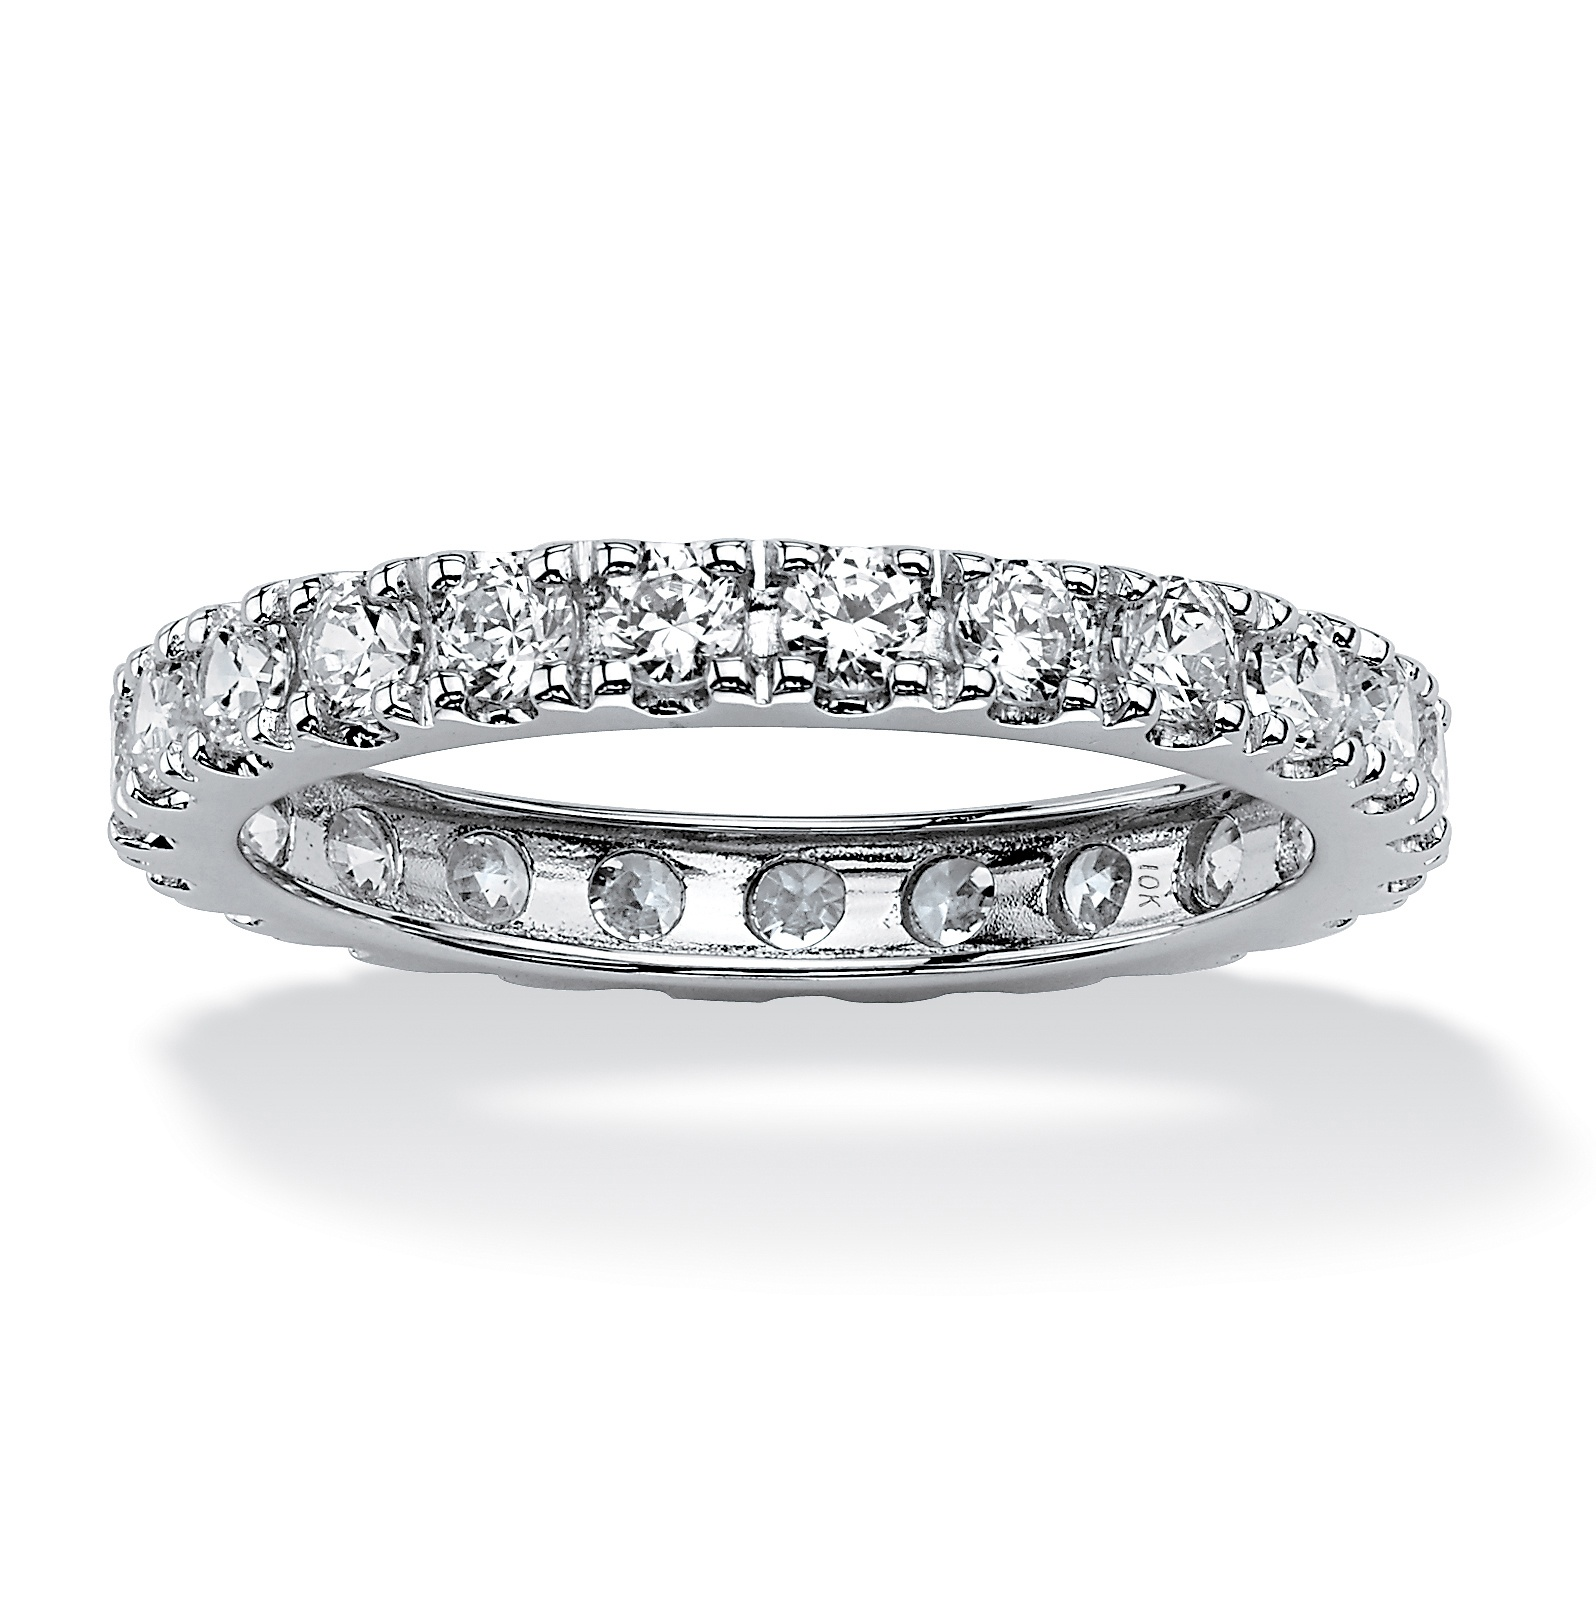 This is a photo of 44.44 TCW Round Cubic Zirconia Eternity Band in Solid 44k White